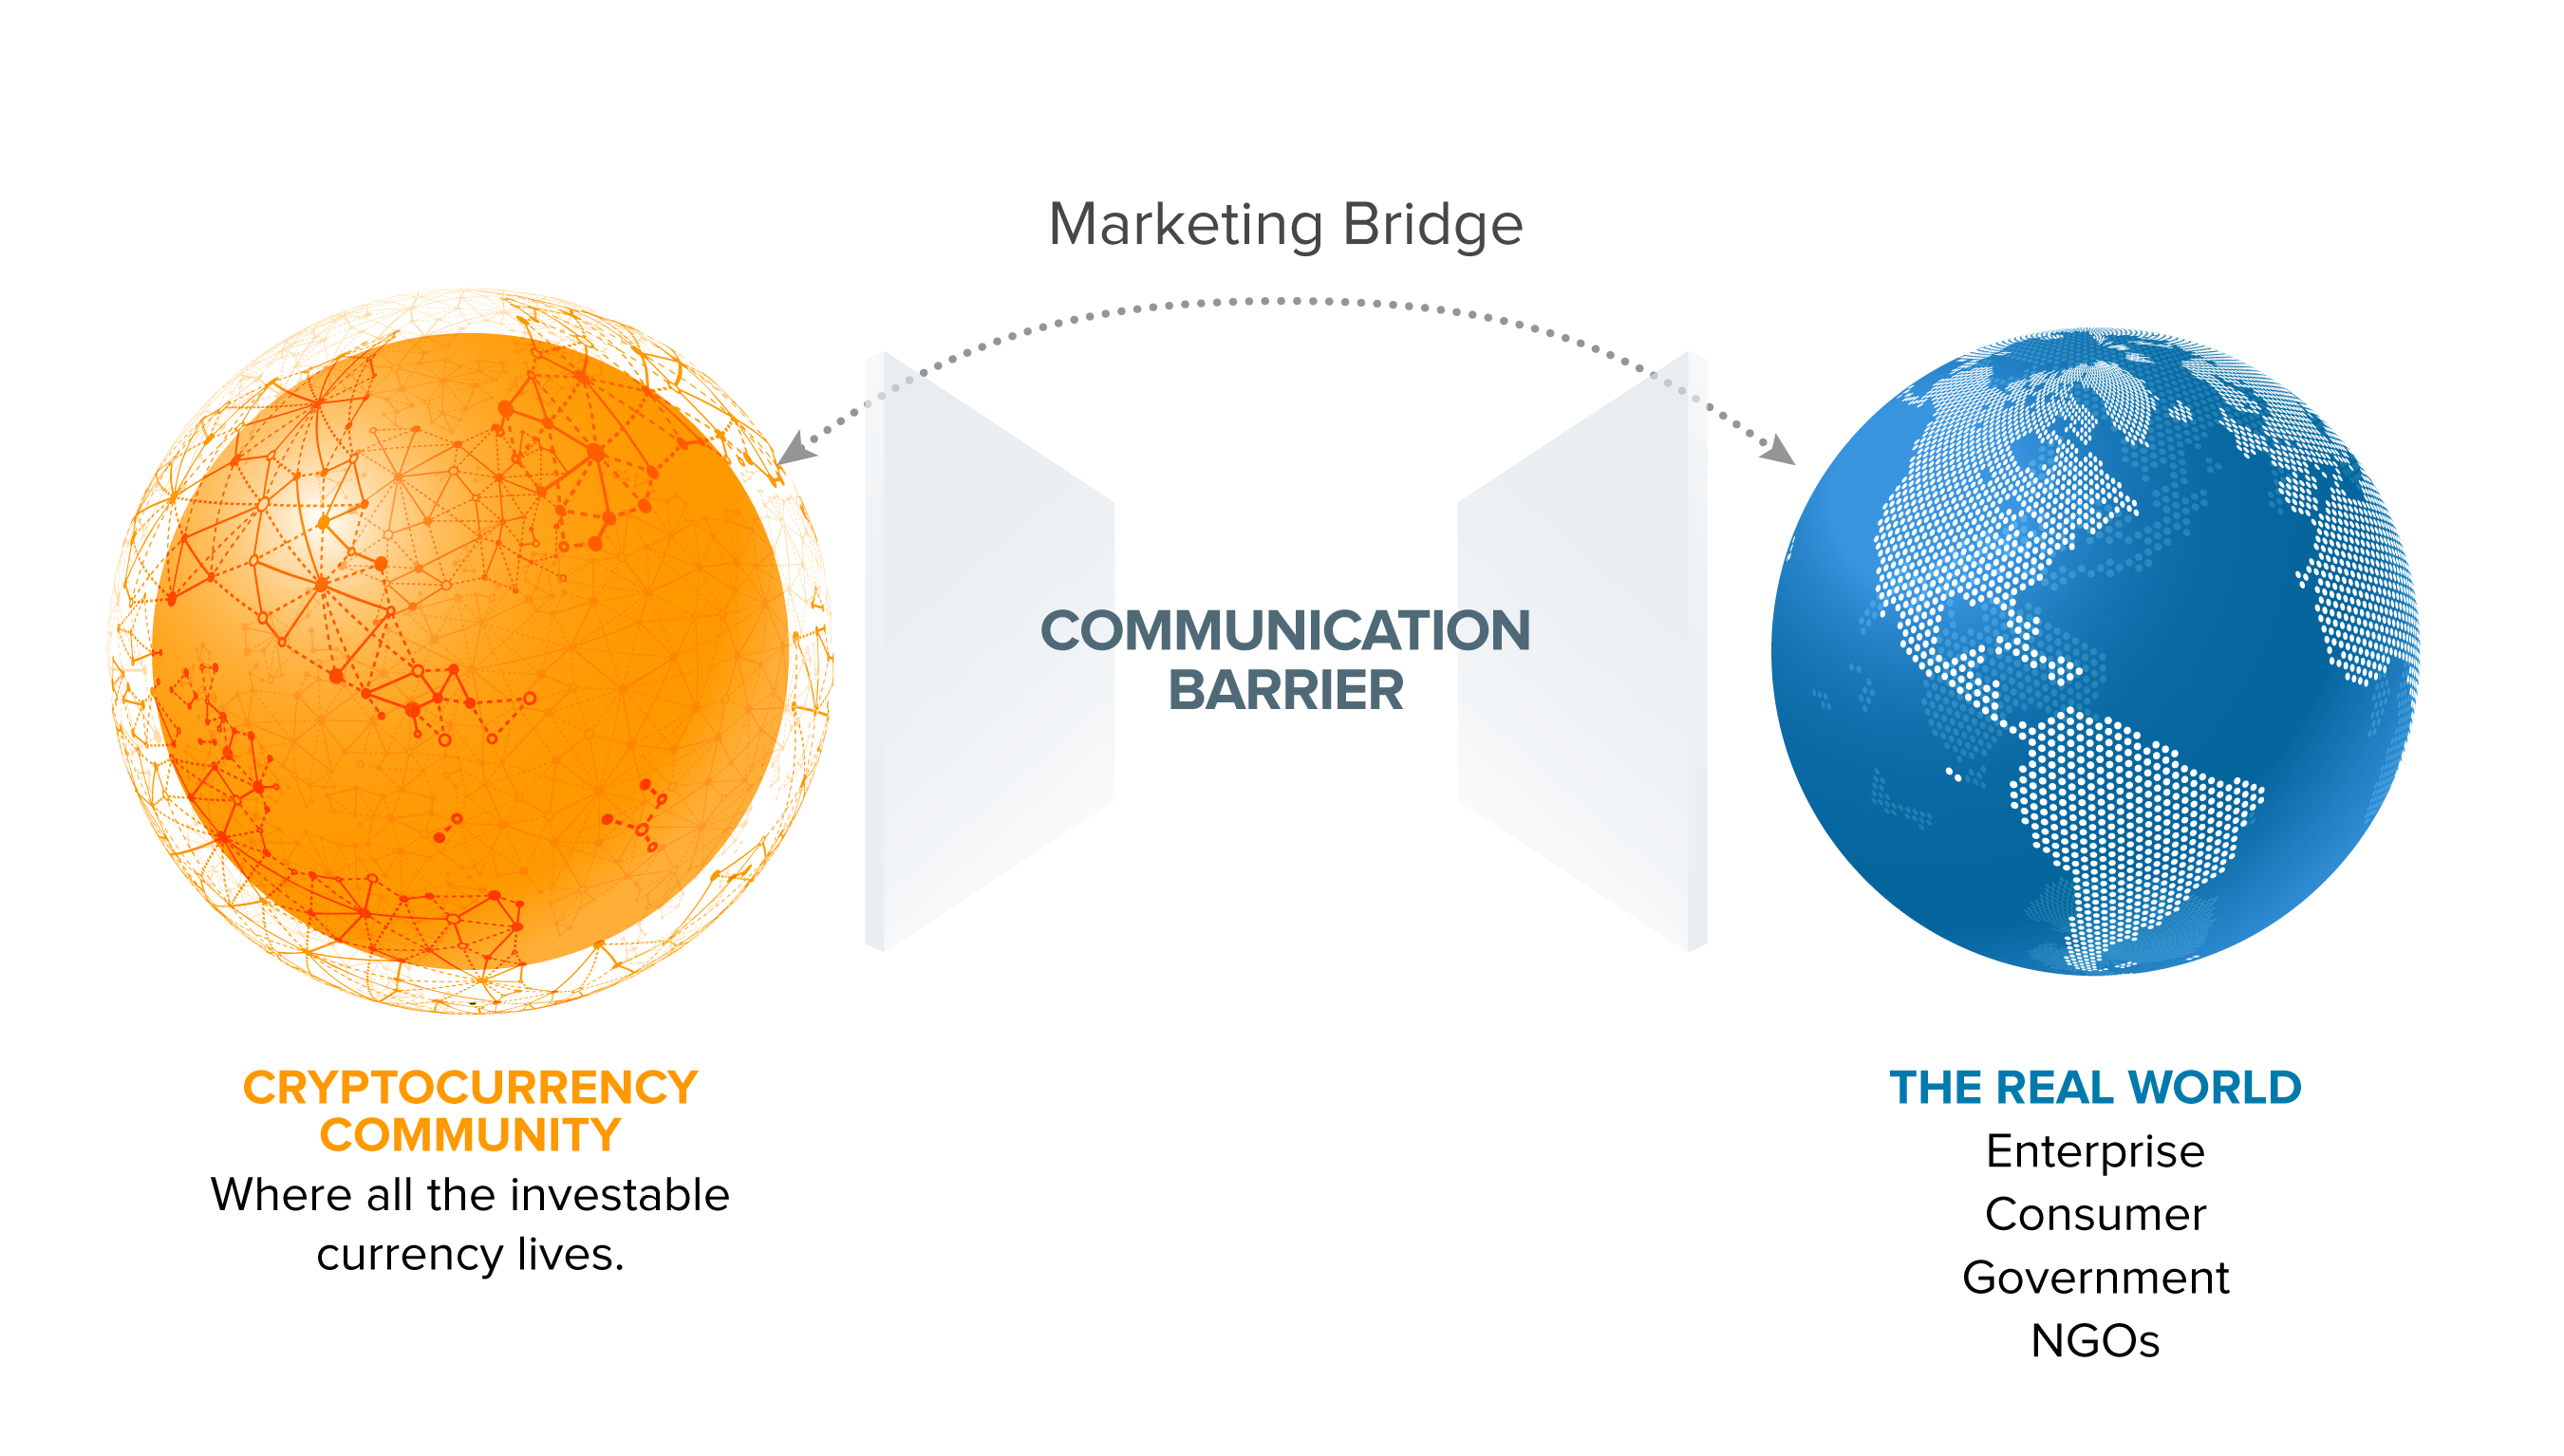 marketing-bridge-diagram-v3-01